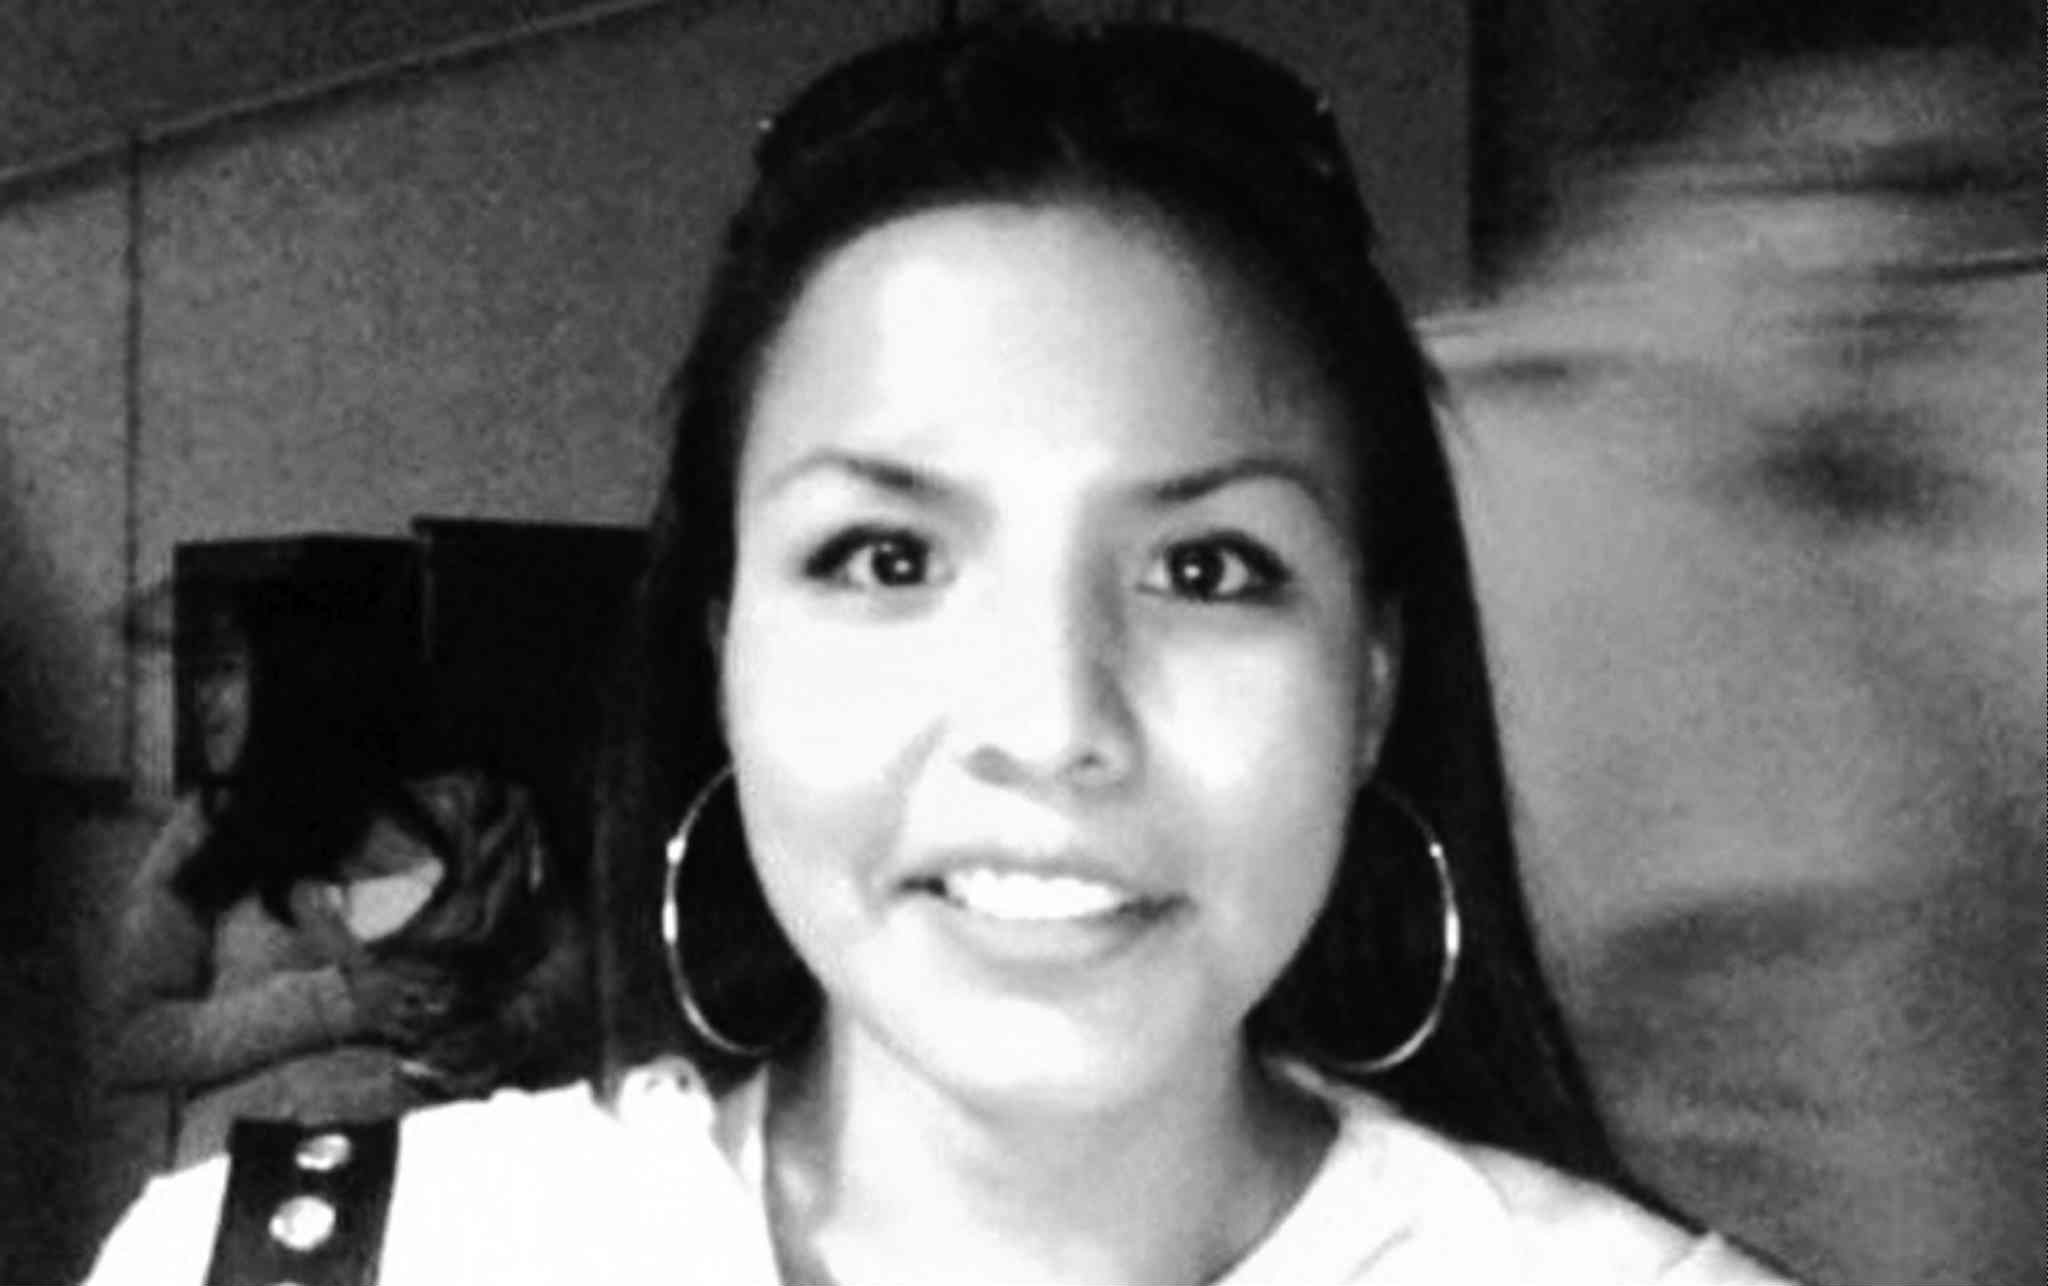 The judge presiding over the inquest into Nicole Redhead's killing of her daughter, Jaylene, says he was surprised by the lack of supervision at the Native Women's Transition Centre.